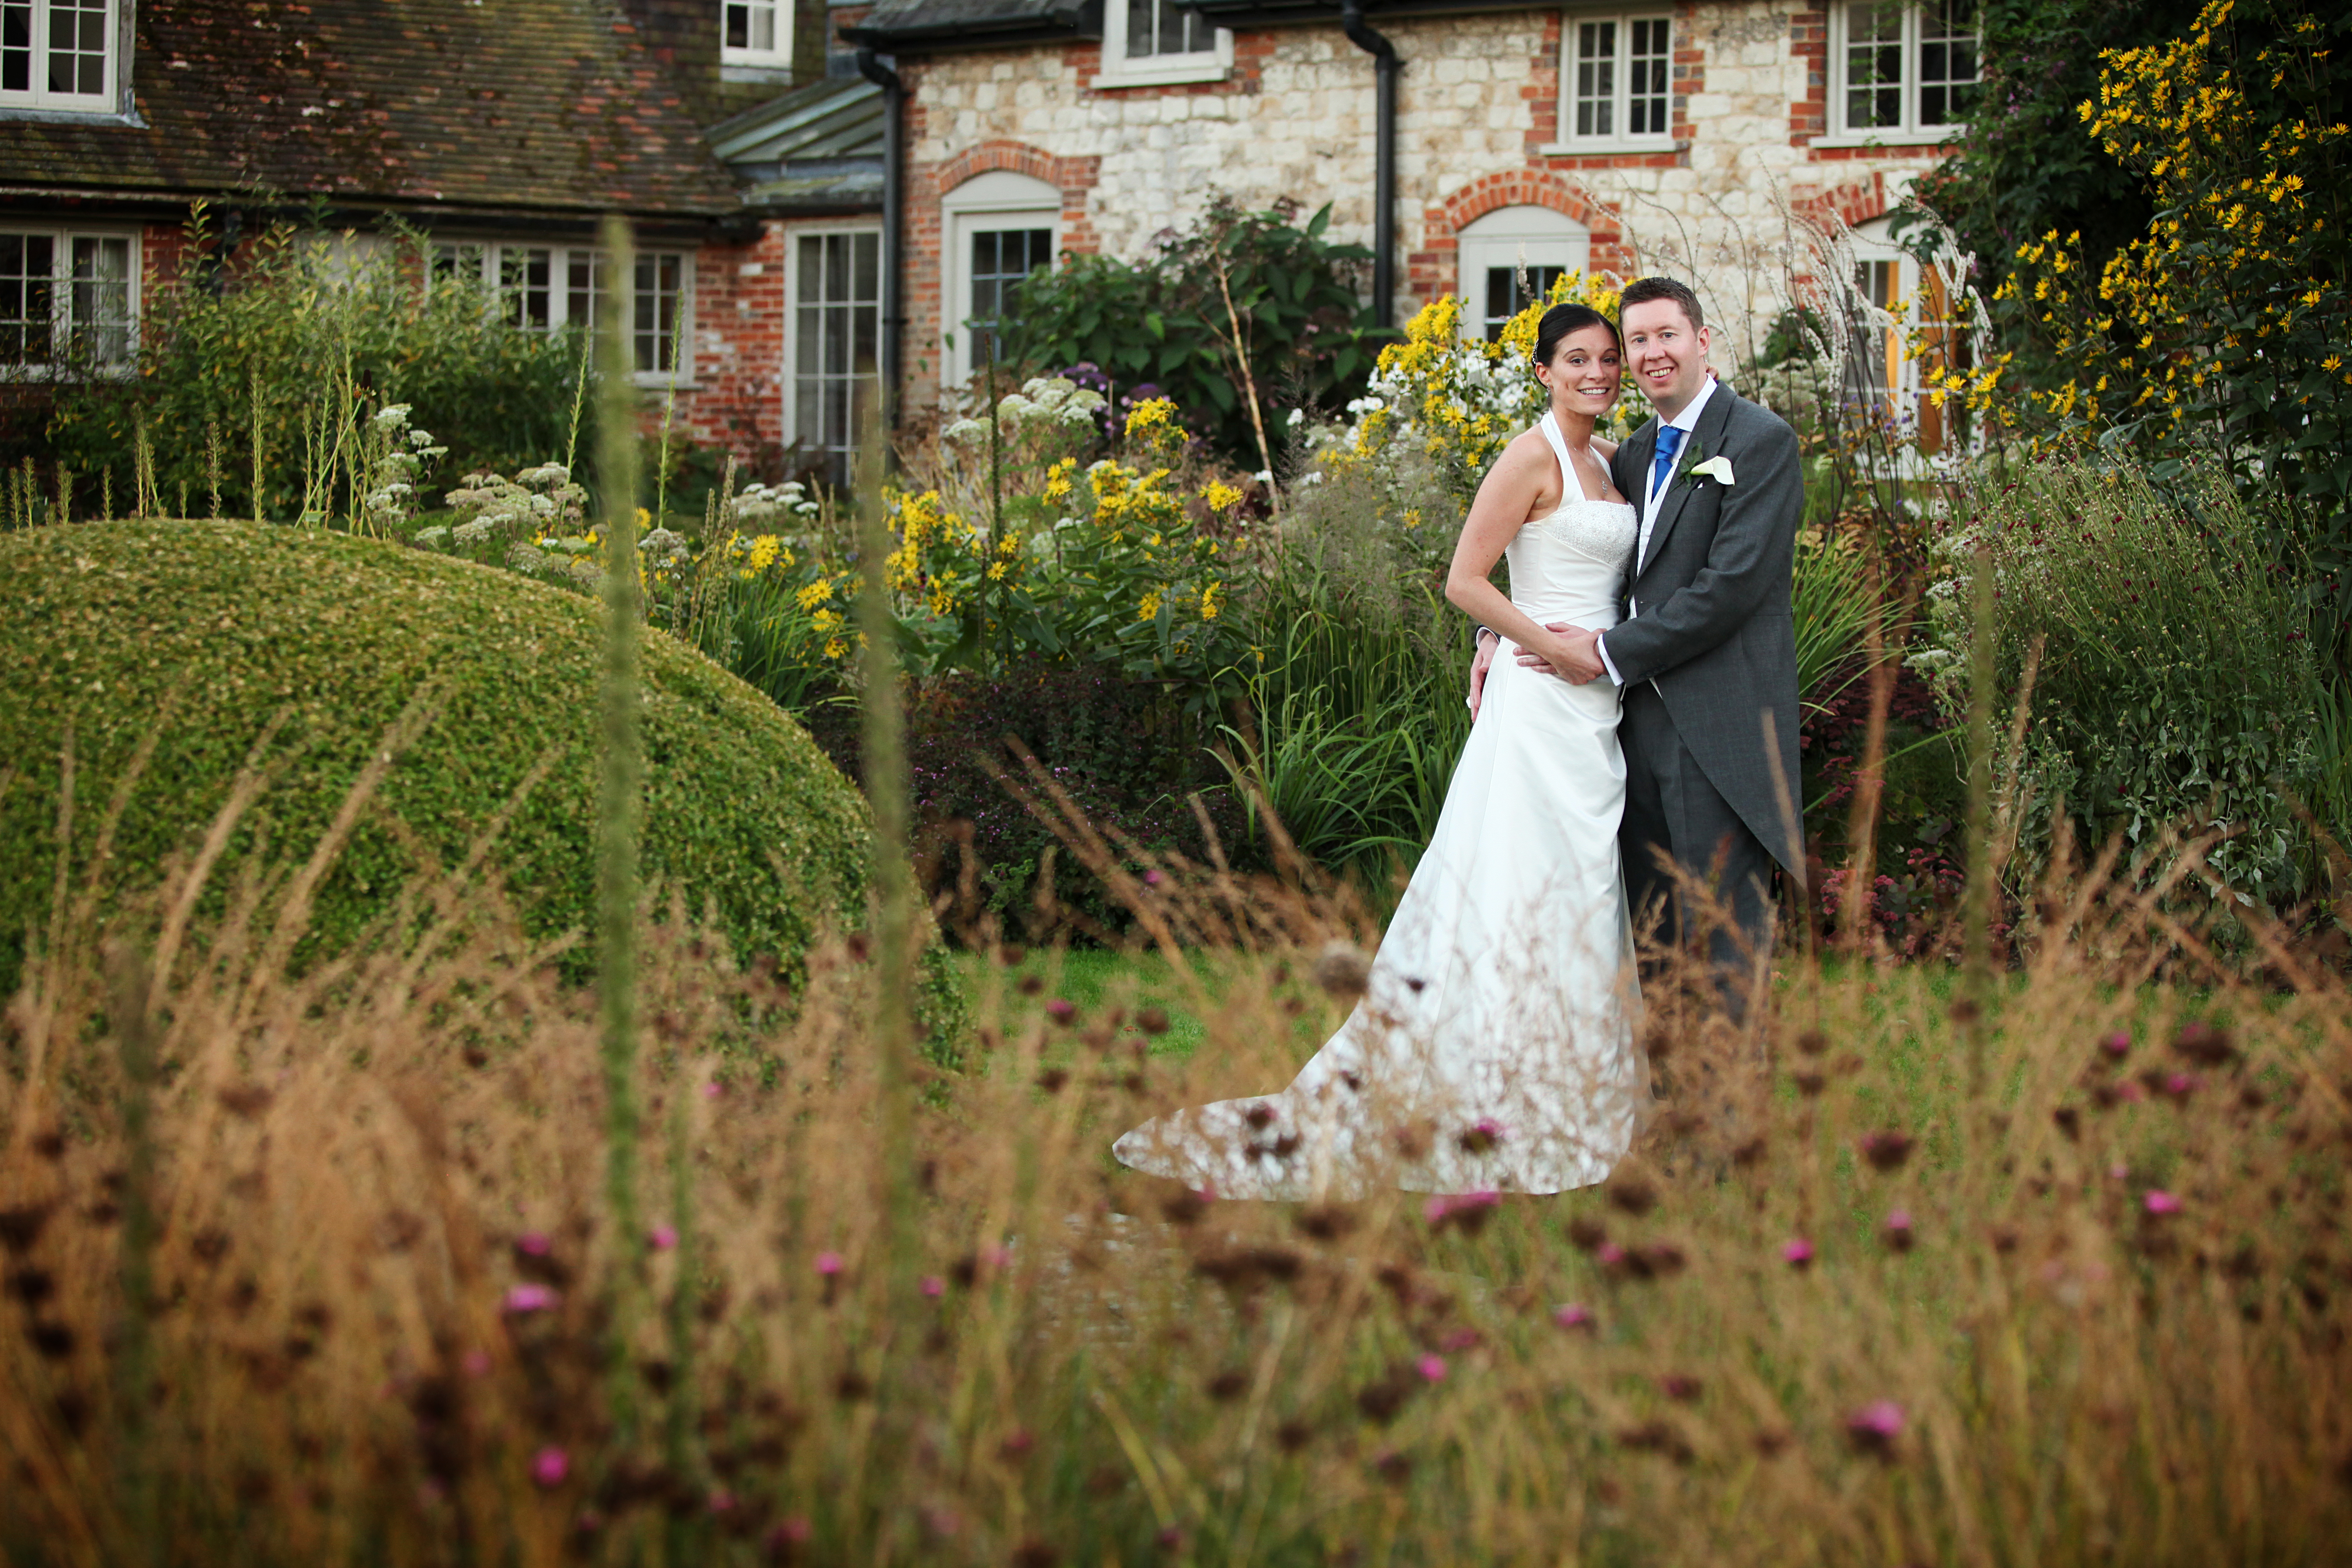 Chris & Stuart tie the knot at Bury Court Barn